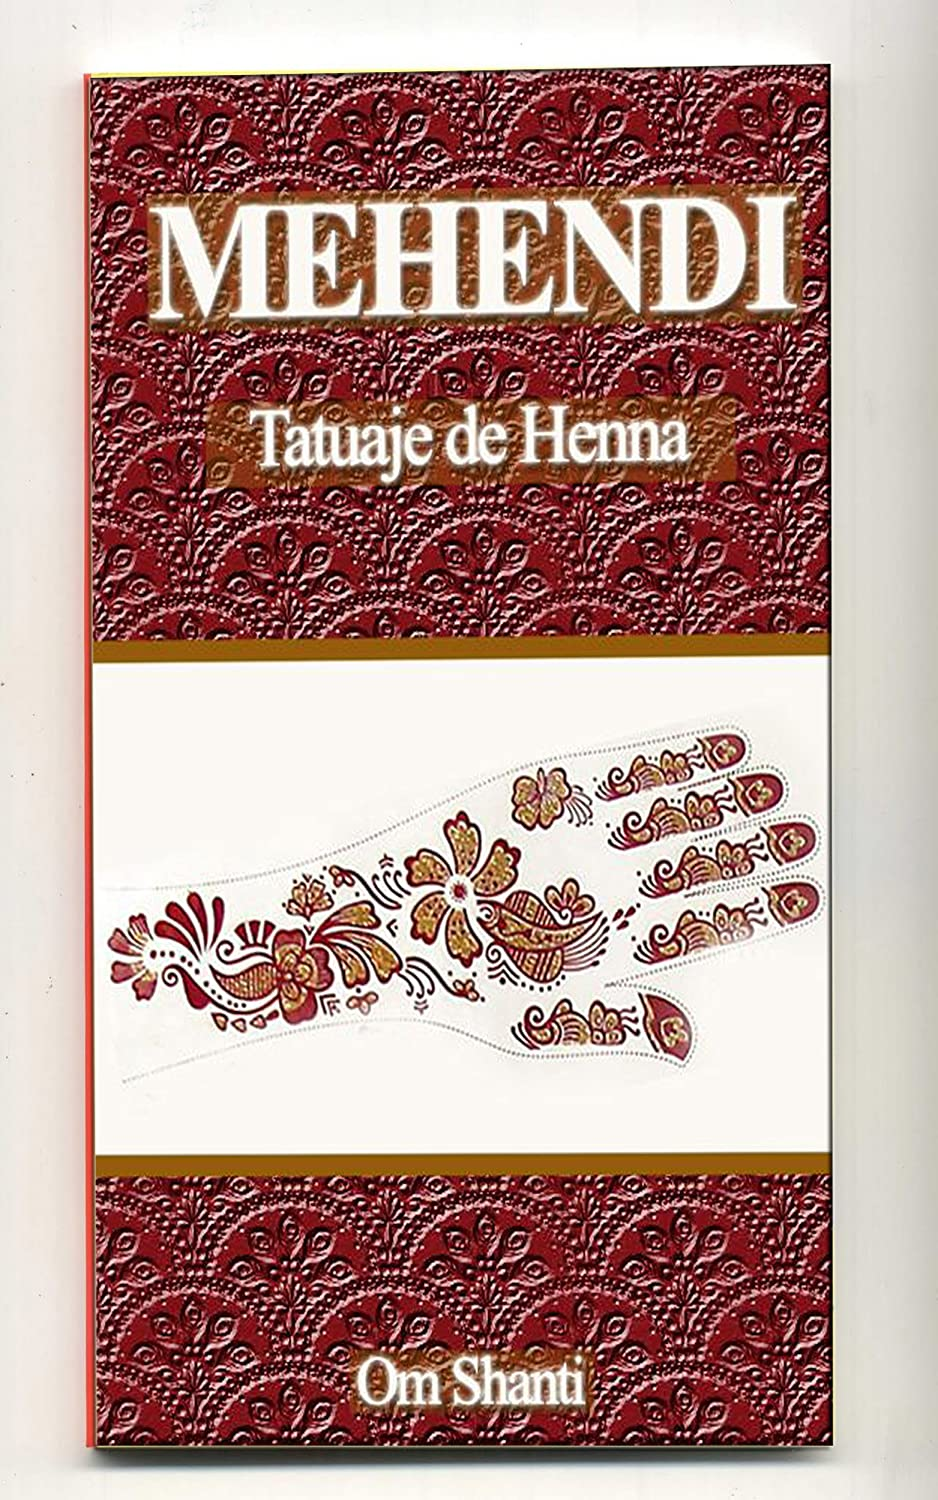 Mehendi Tatuaje de Henna eBook: Om Shanti: Amazon.es: Tienda Kindle